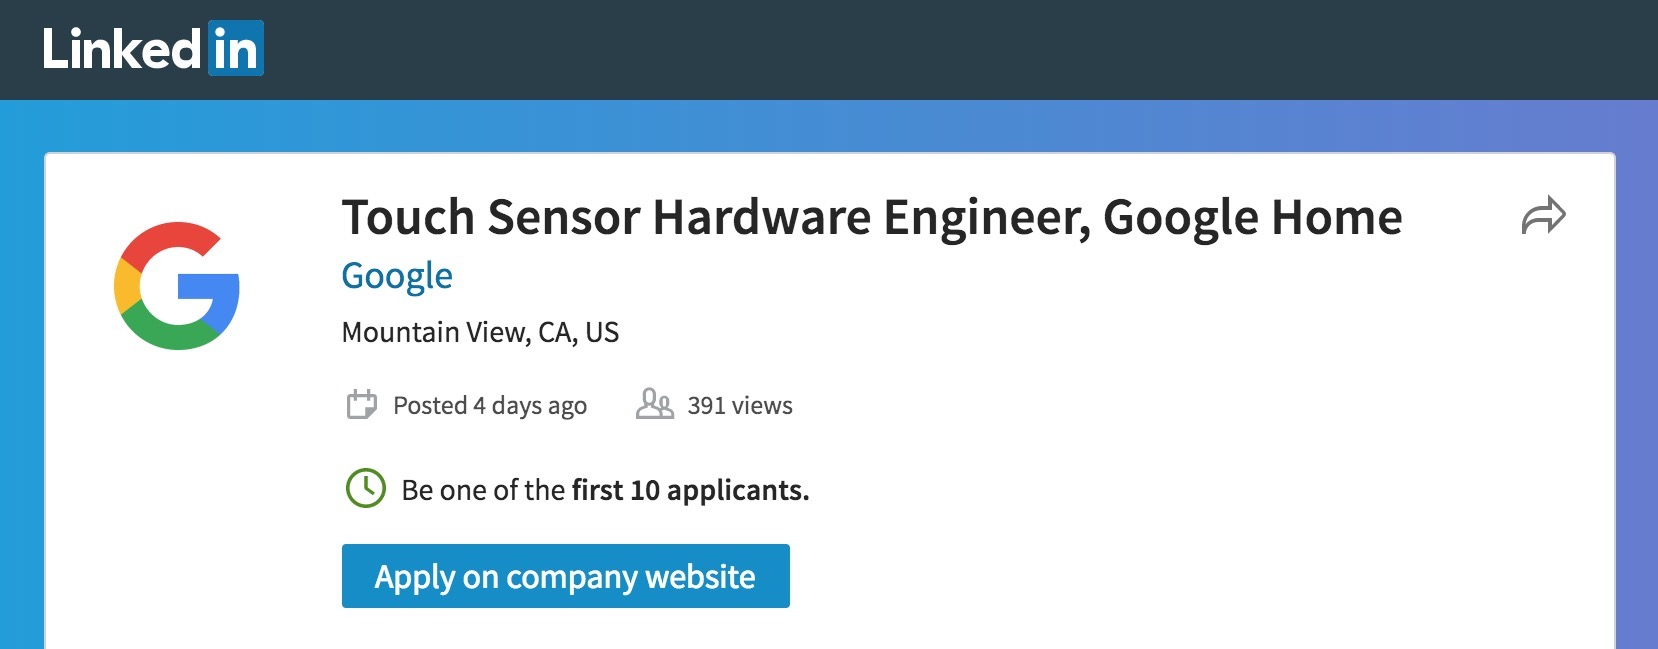 Google Home With Touch Screen Tipped By Linkedin Job Listing